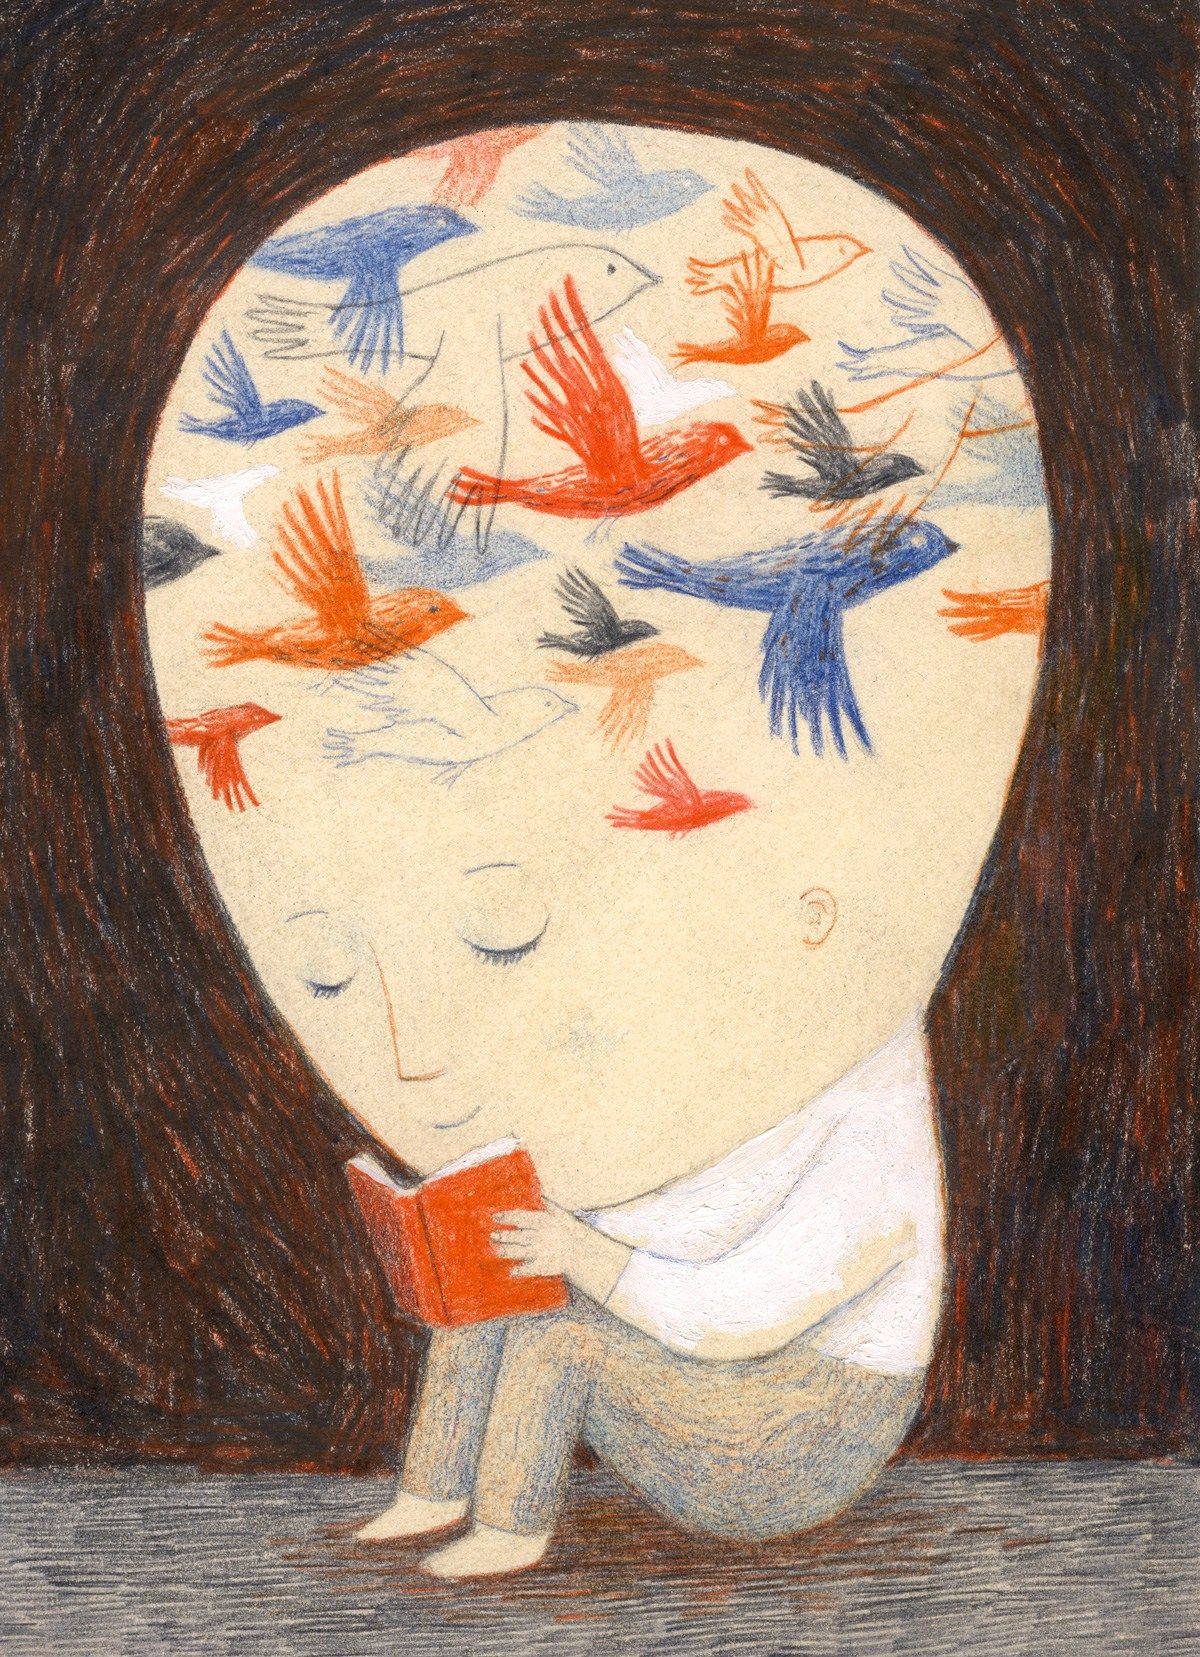 Arte de Ofra Amit para A Velocity of Being: Letters to a Young Reader.